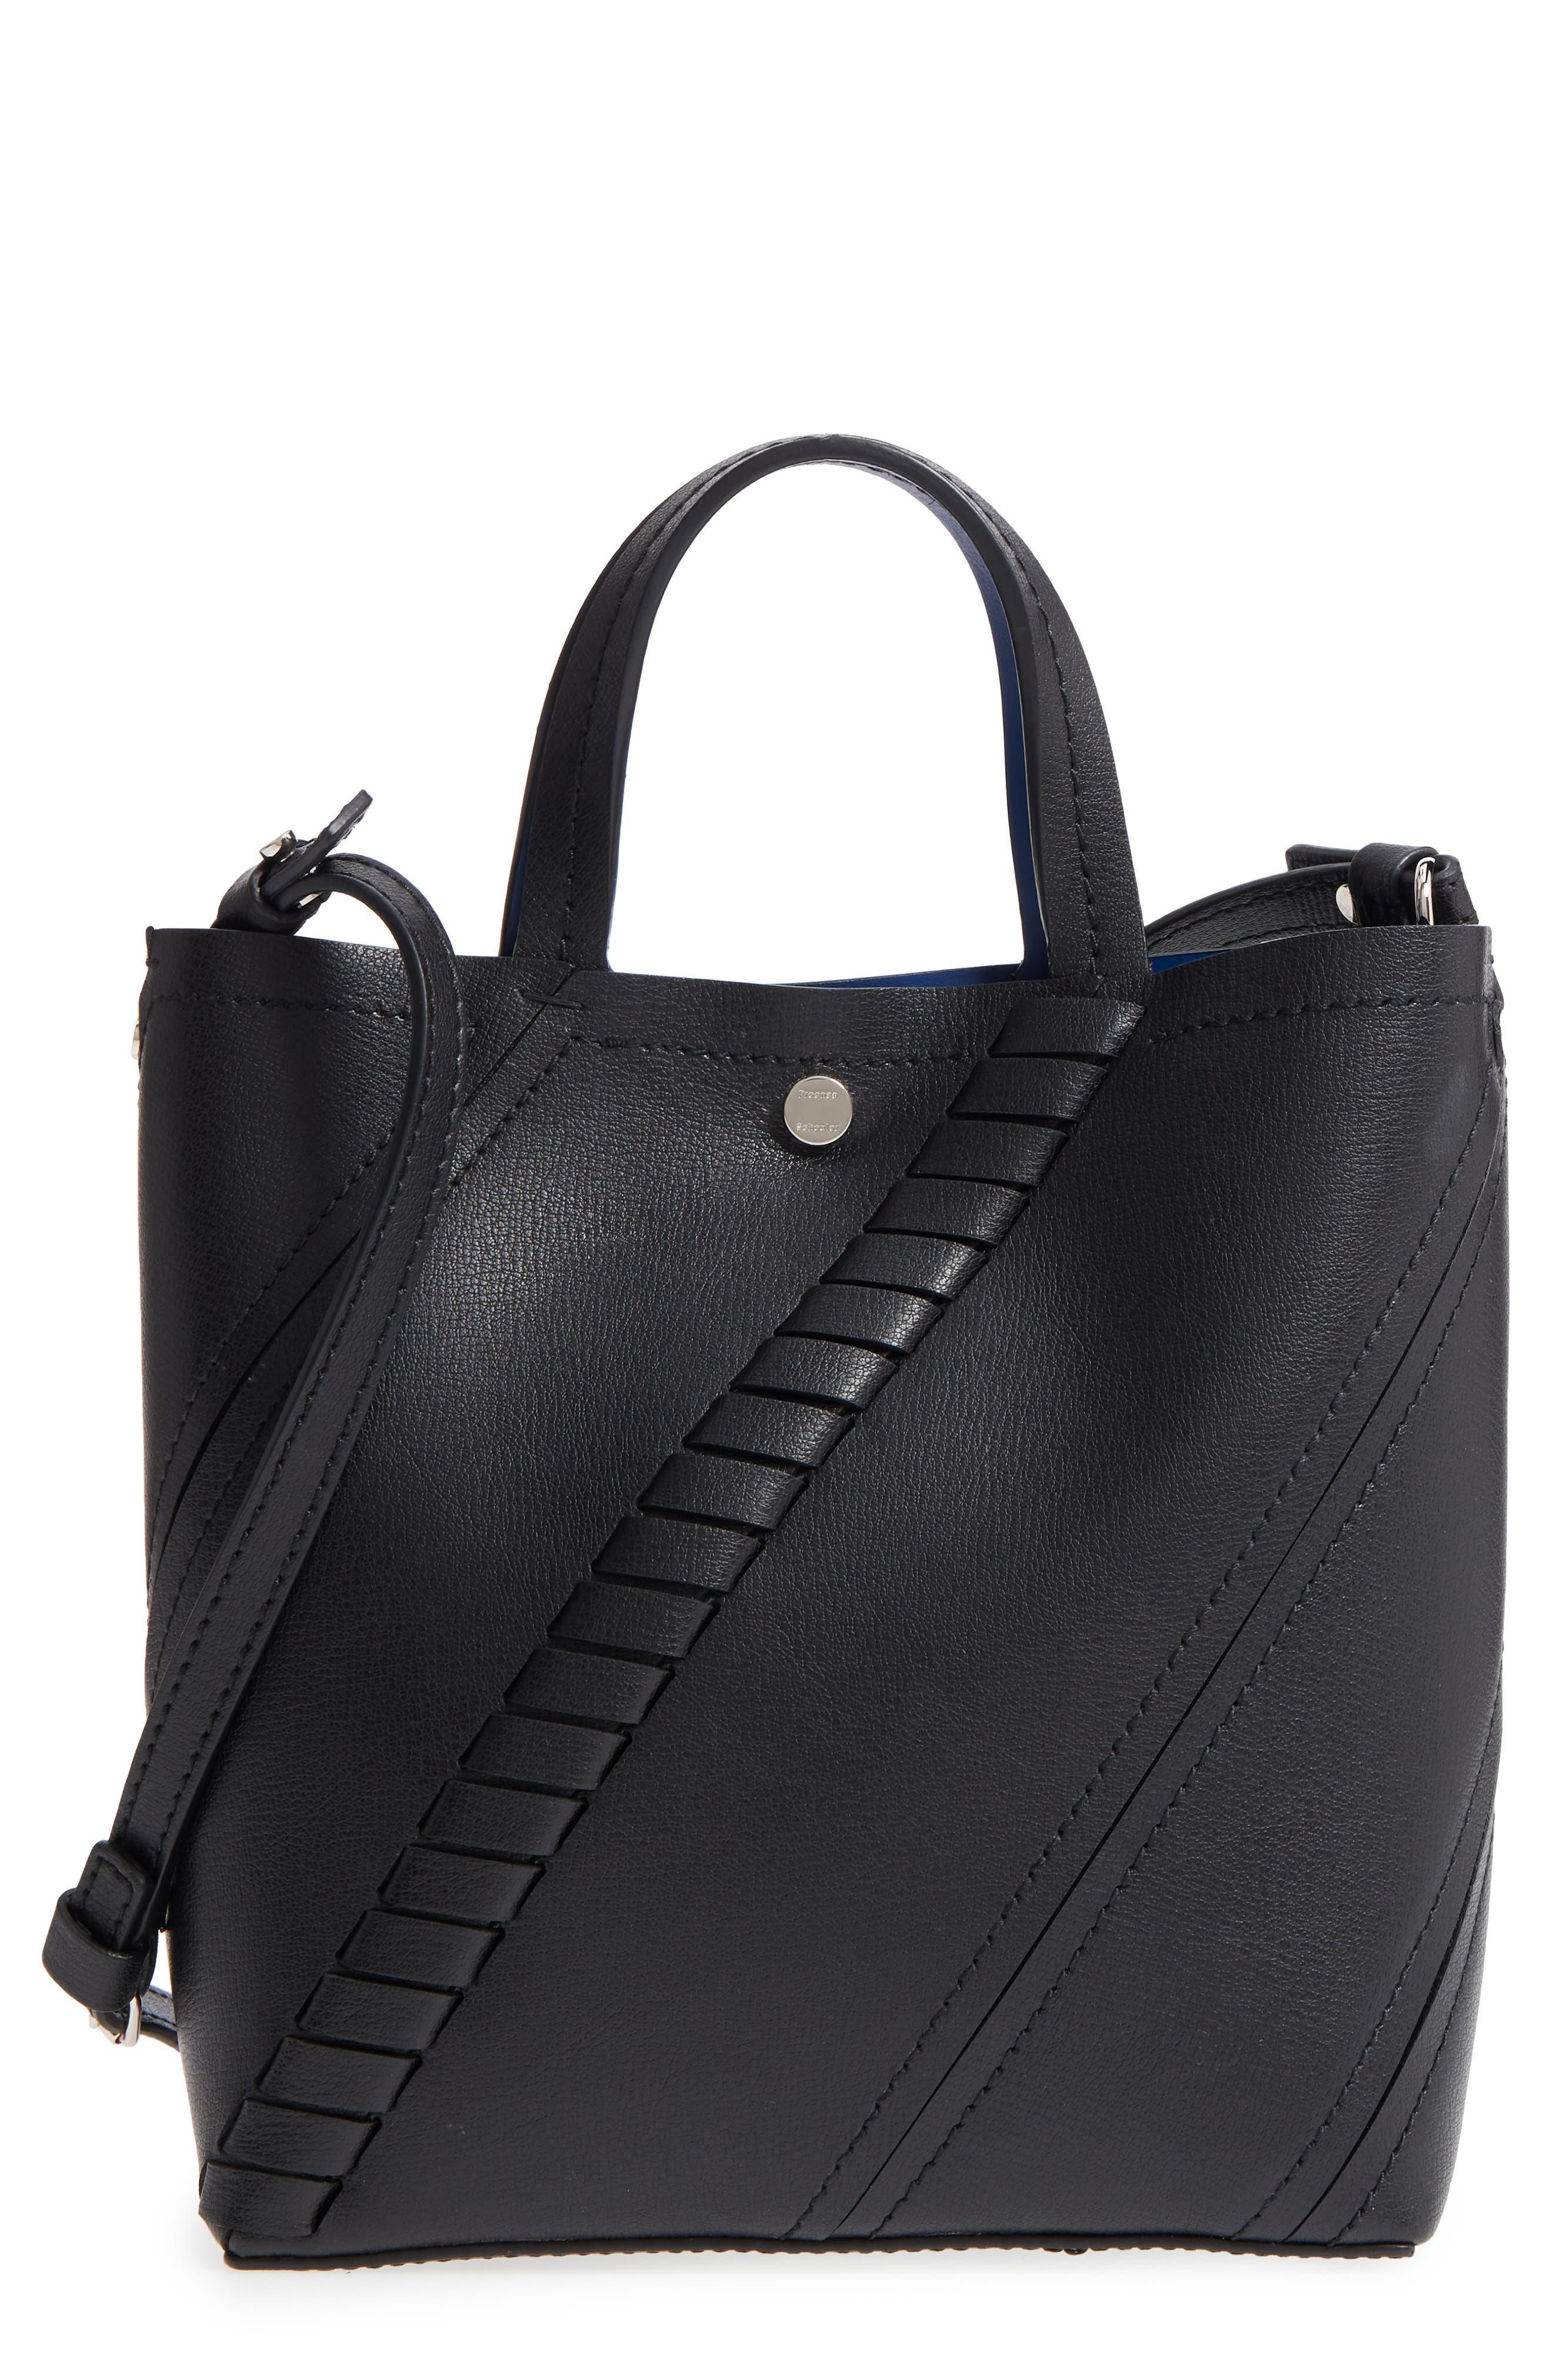 PROENZA SCHOULER, Mini Hex Whipstitch Calfskin Leather Tote, Main thumbnail 1, color, BLACK